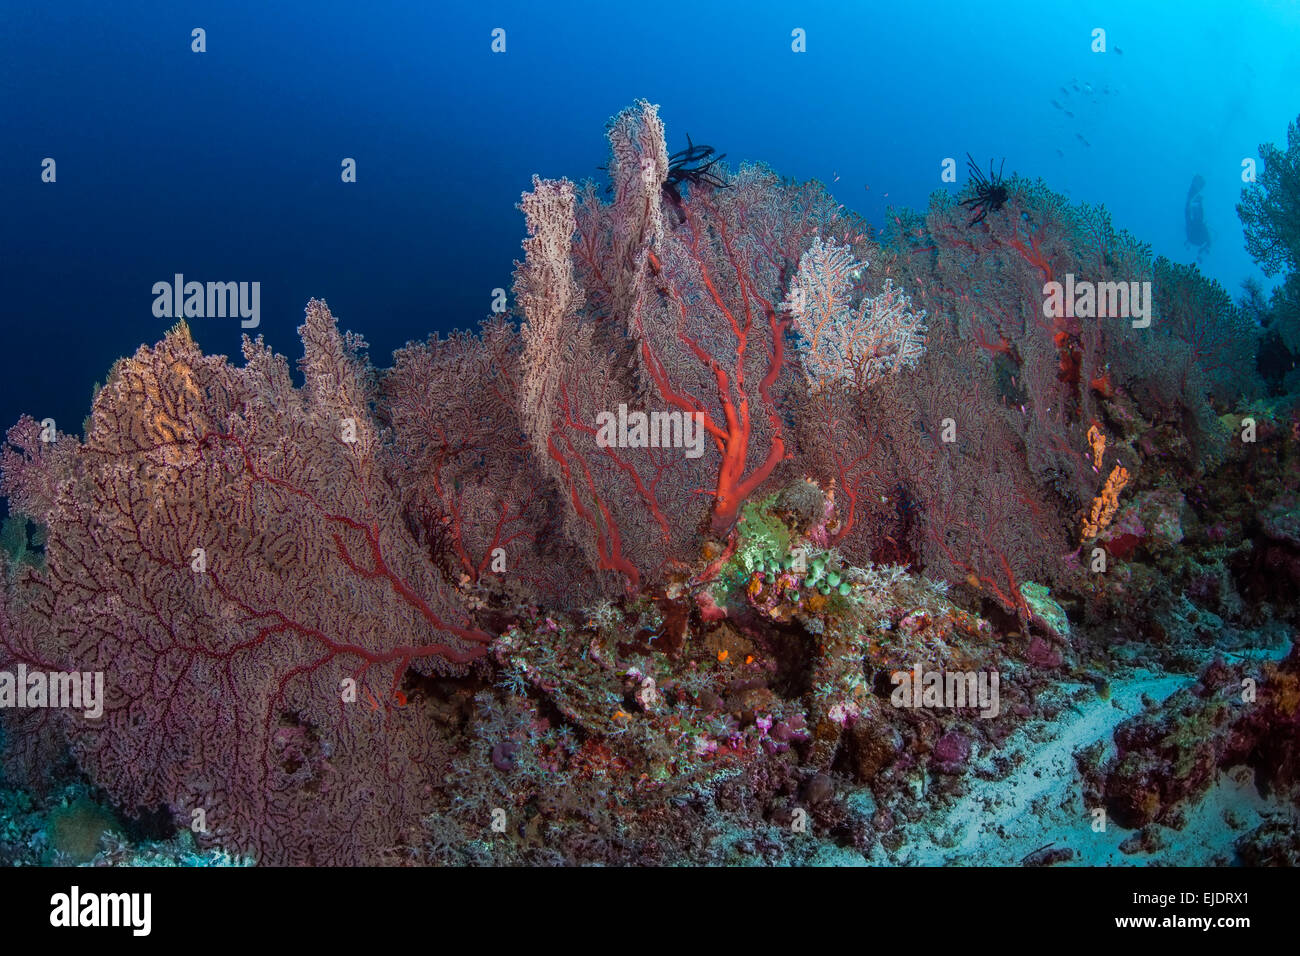 Large colony of red gorgonian sea fans - Stock Image